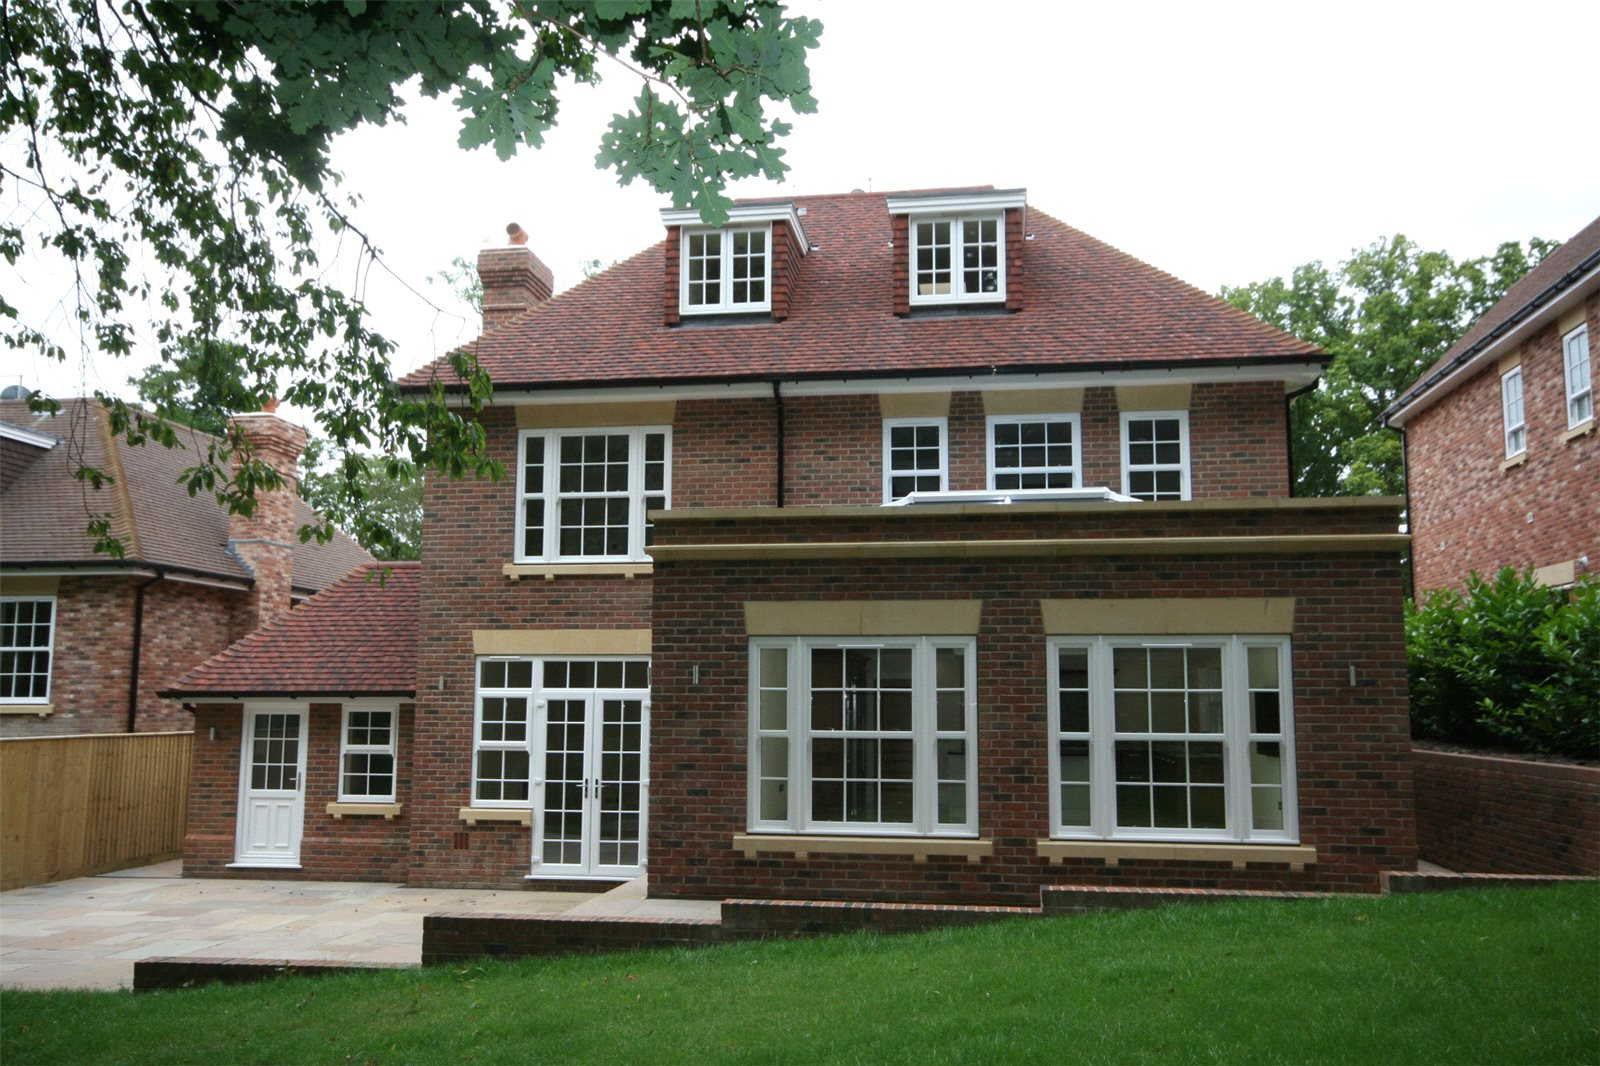 Villa per Vendita alle ore Strawberry Hill, Gerrards Cross, Buckinghamshire, SL9 Gerrards Cross, Inghilterra